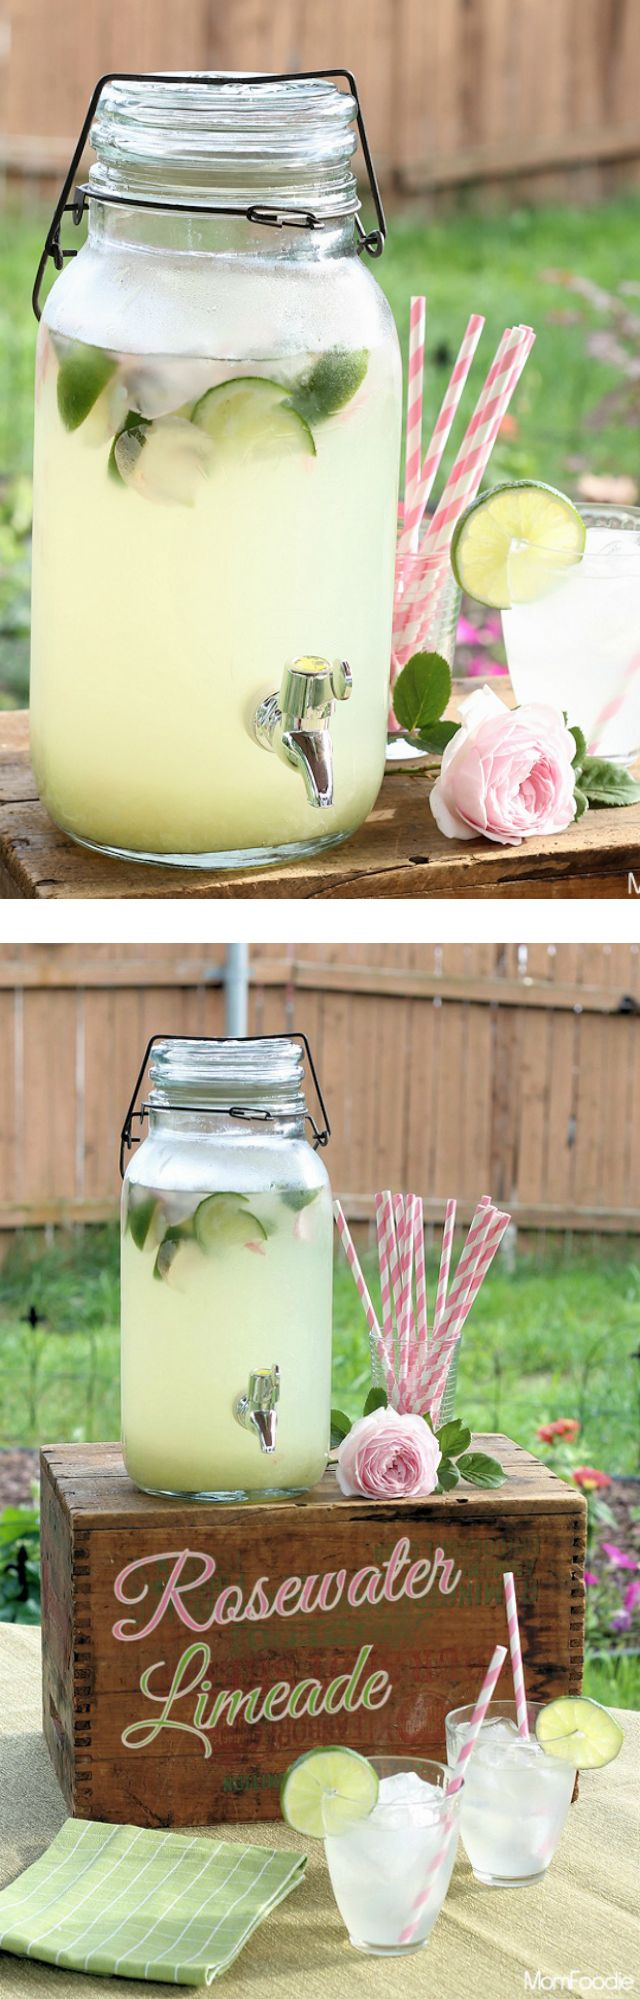 Rosewater Limeade is one of my favorite drinks to make in the summer. The rosewater elevates the simple inexpensive lime and sugar drink into something elegant. I make my Rosewater Limeade recipe a little heavier on the limes than many homemade limeade recipes. This enables the lime flavor to hold strong against rapidly melting ice …